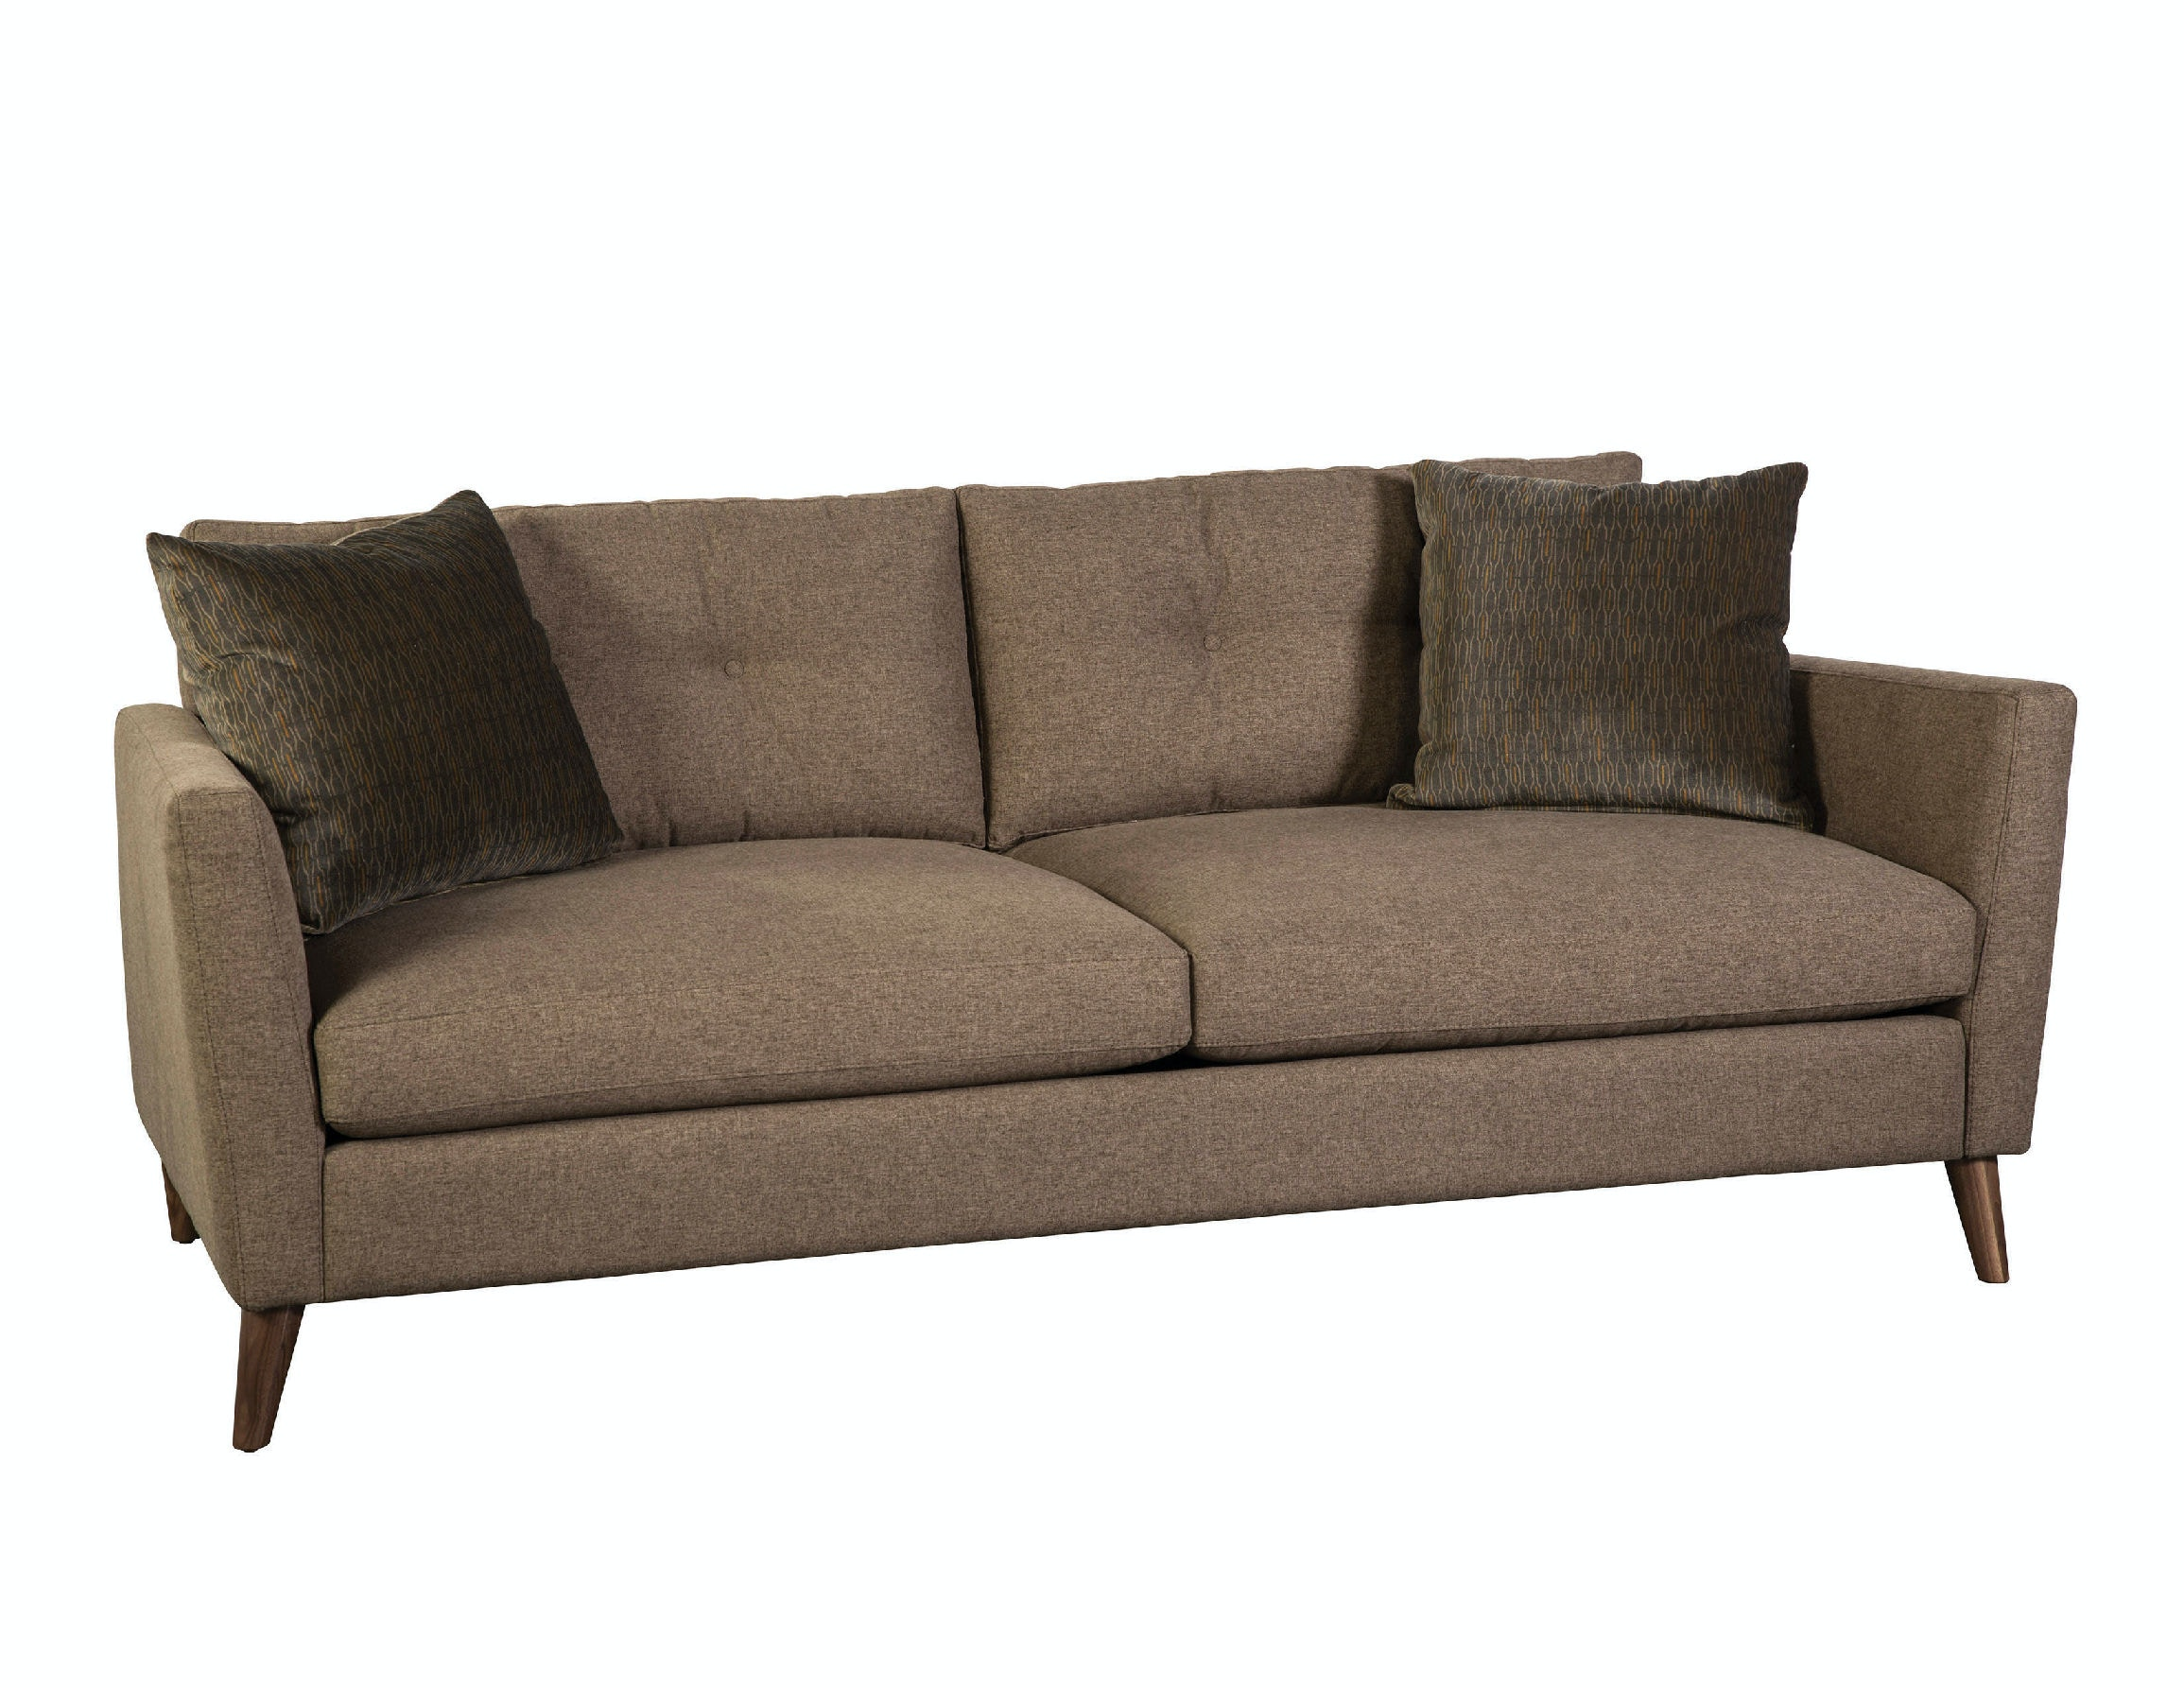 Exceptionnel Jonathan Louis International Sofa 38330